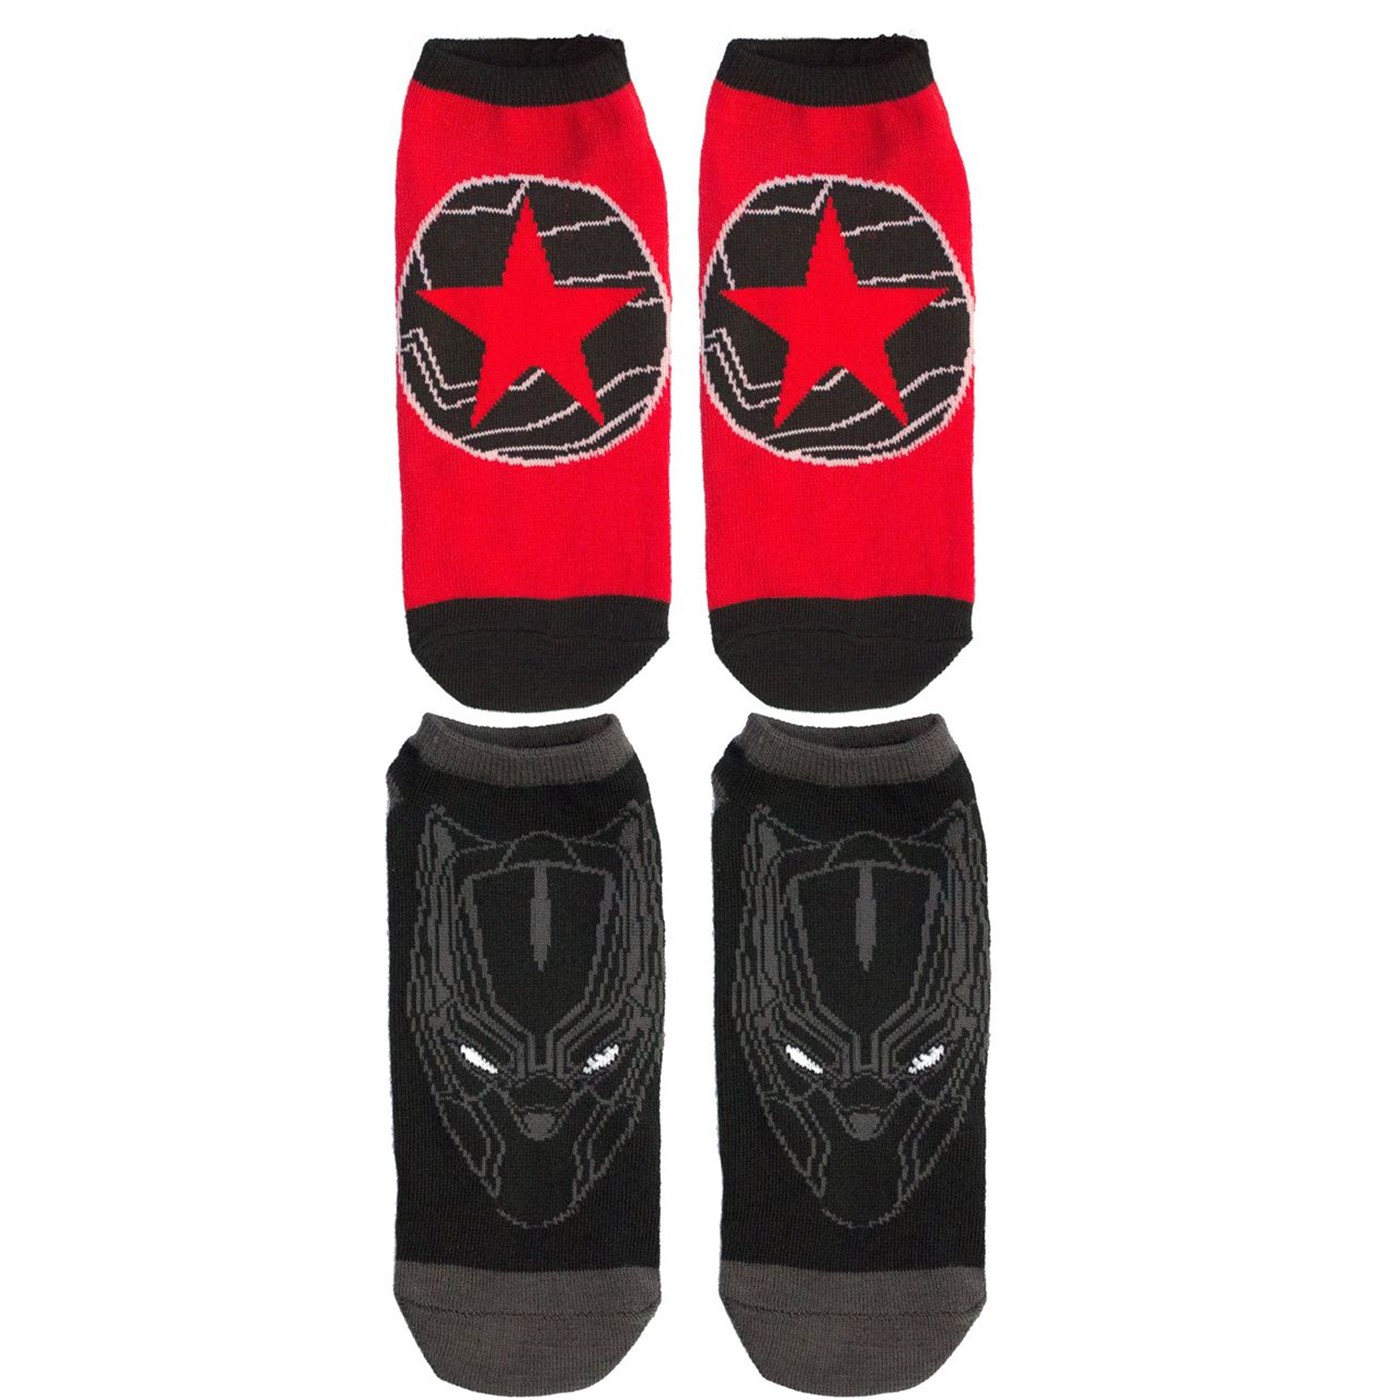 Black Panther and Winter Soldier 2-pack Women's Ankle socks